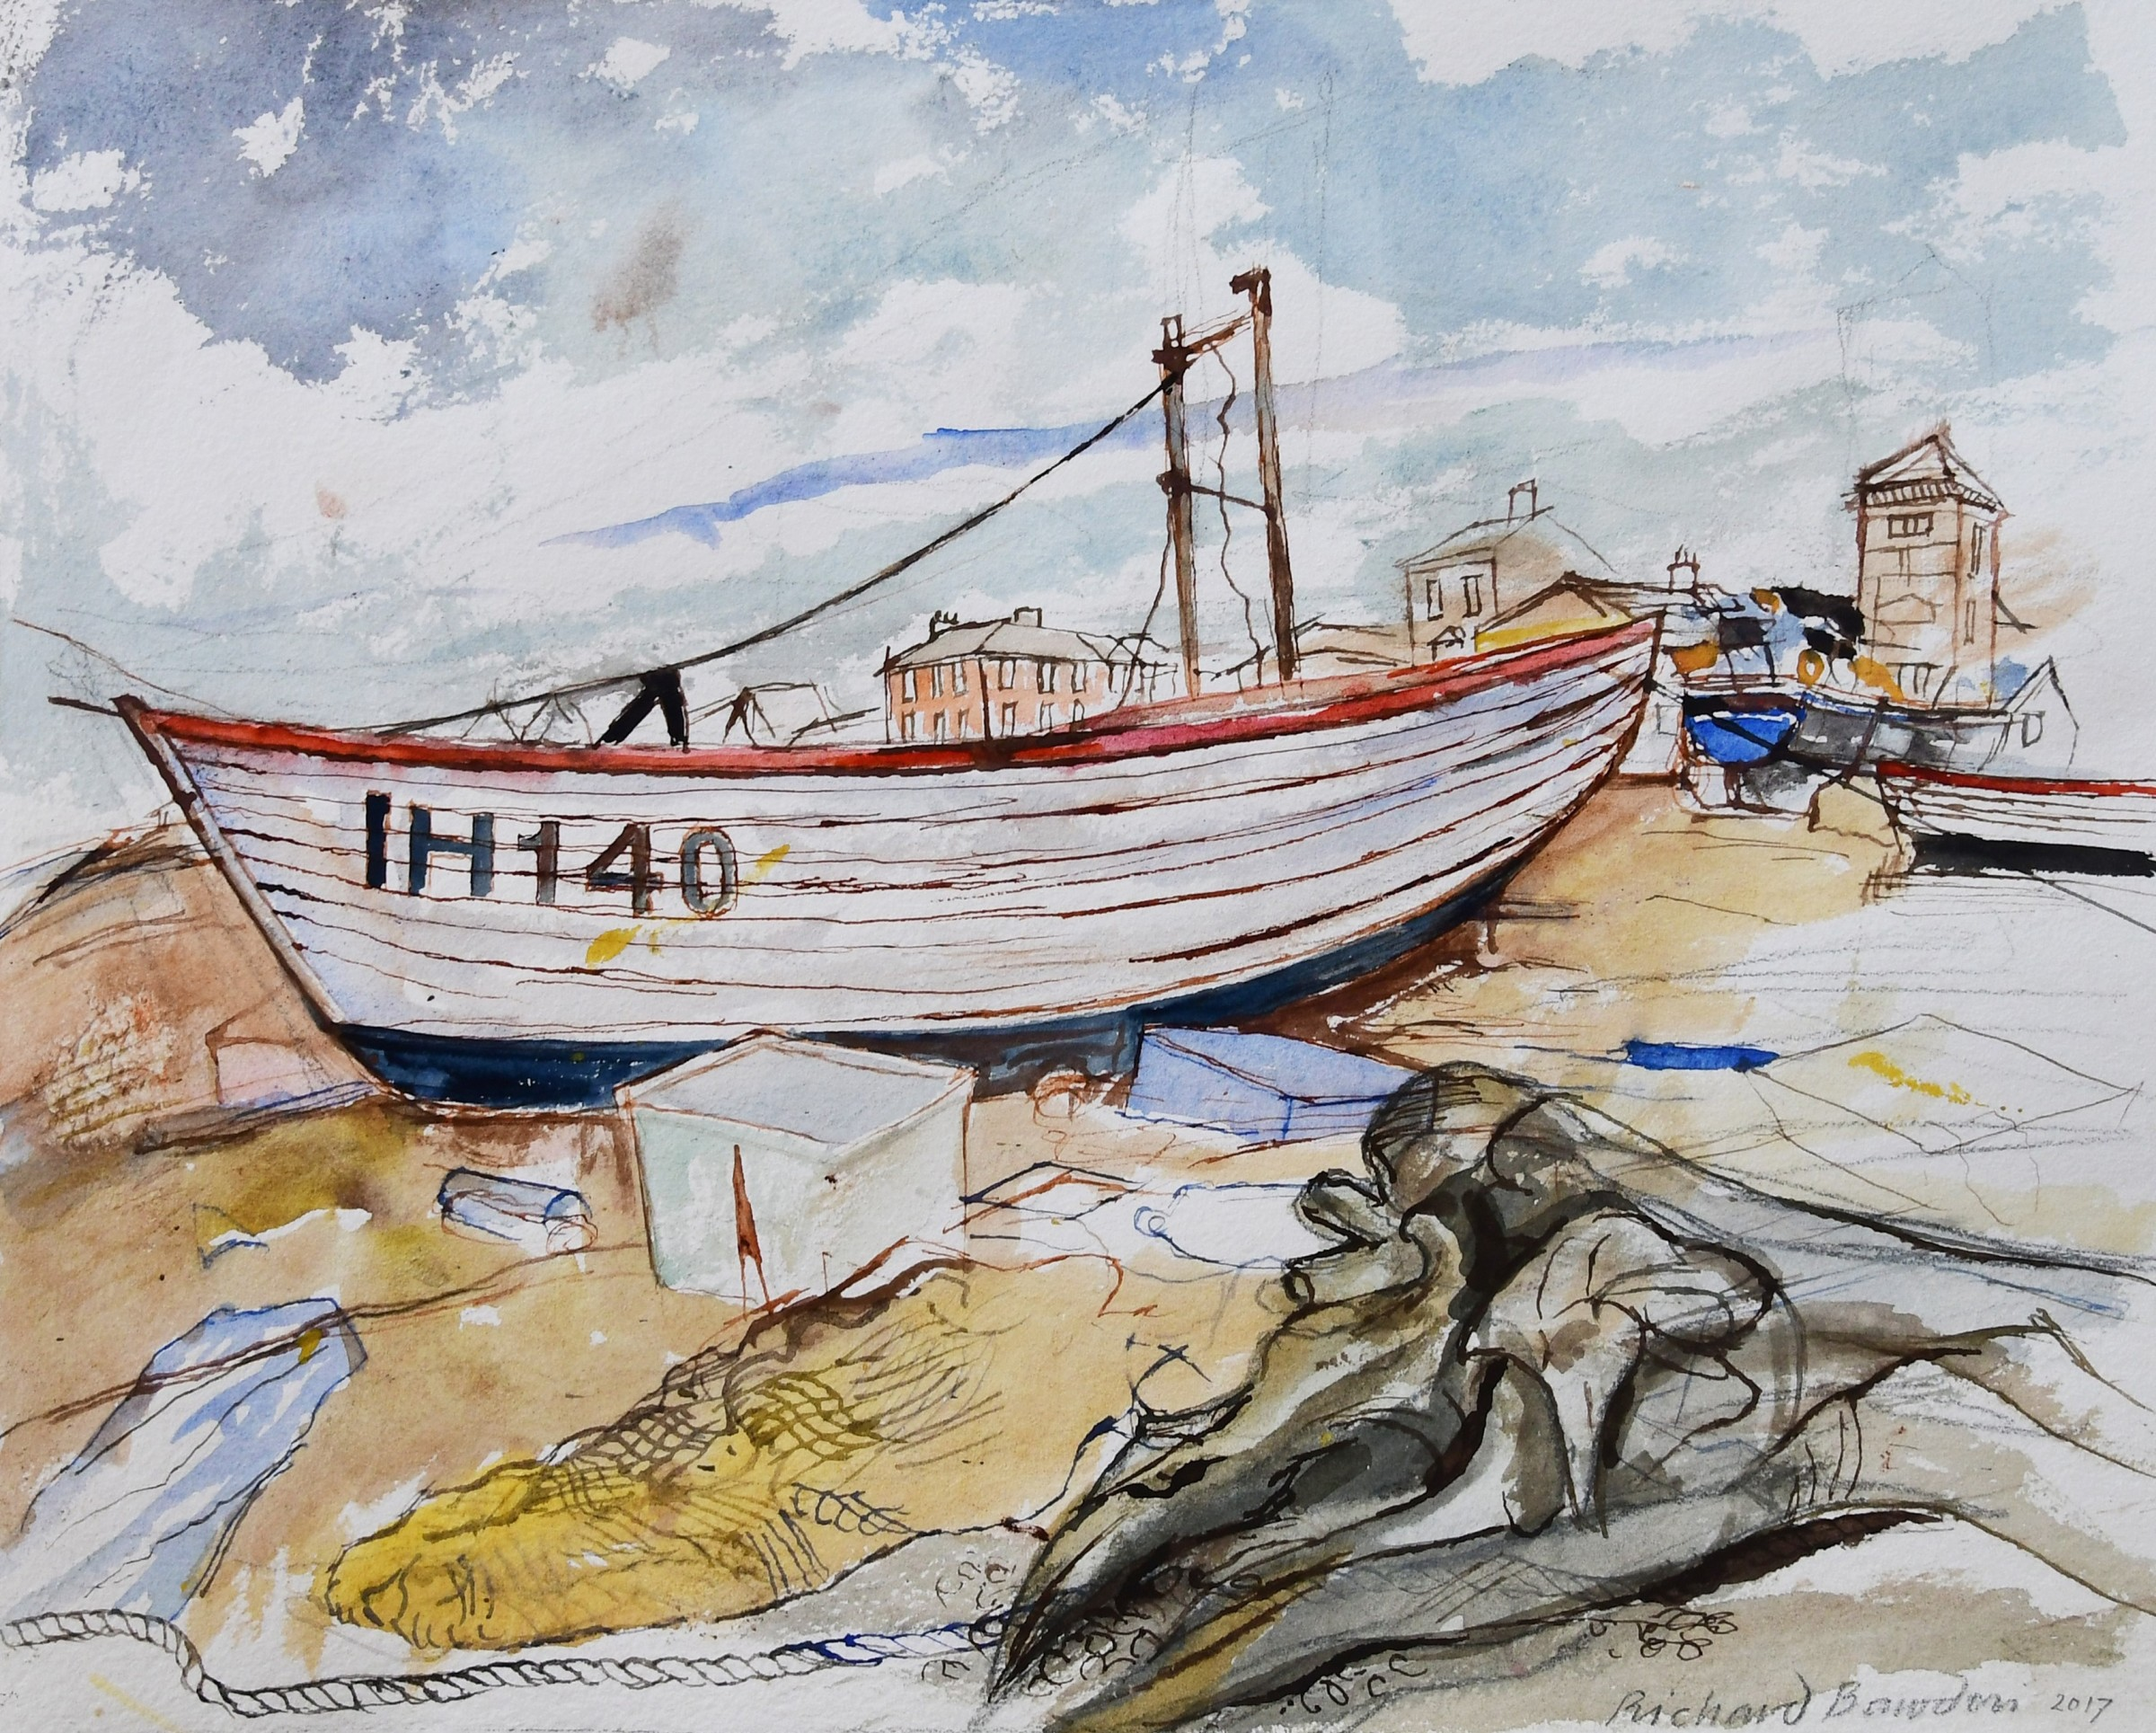 <span class=&#34;link fancybox-details-link&#34;><a href=&#34;/artists/38-richard-bawden/works/10513-richard-bawden-aldeburgh-beach-and-washed-up-log/&#34;>View Detail Page</a></span><div class=&#34;artist&#34;><span class=&#34;artist&#34;><strong>Richard Bawden</strong></span></div>